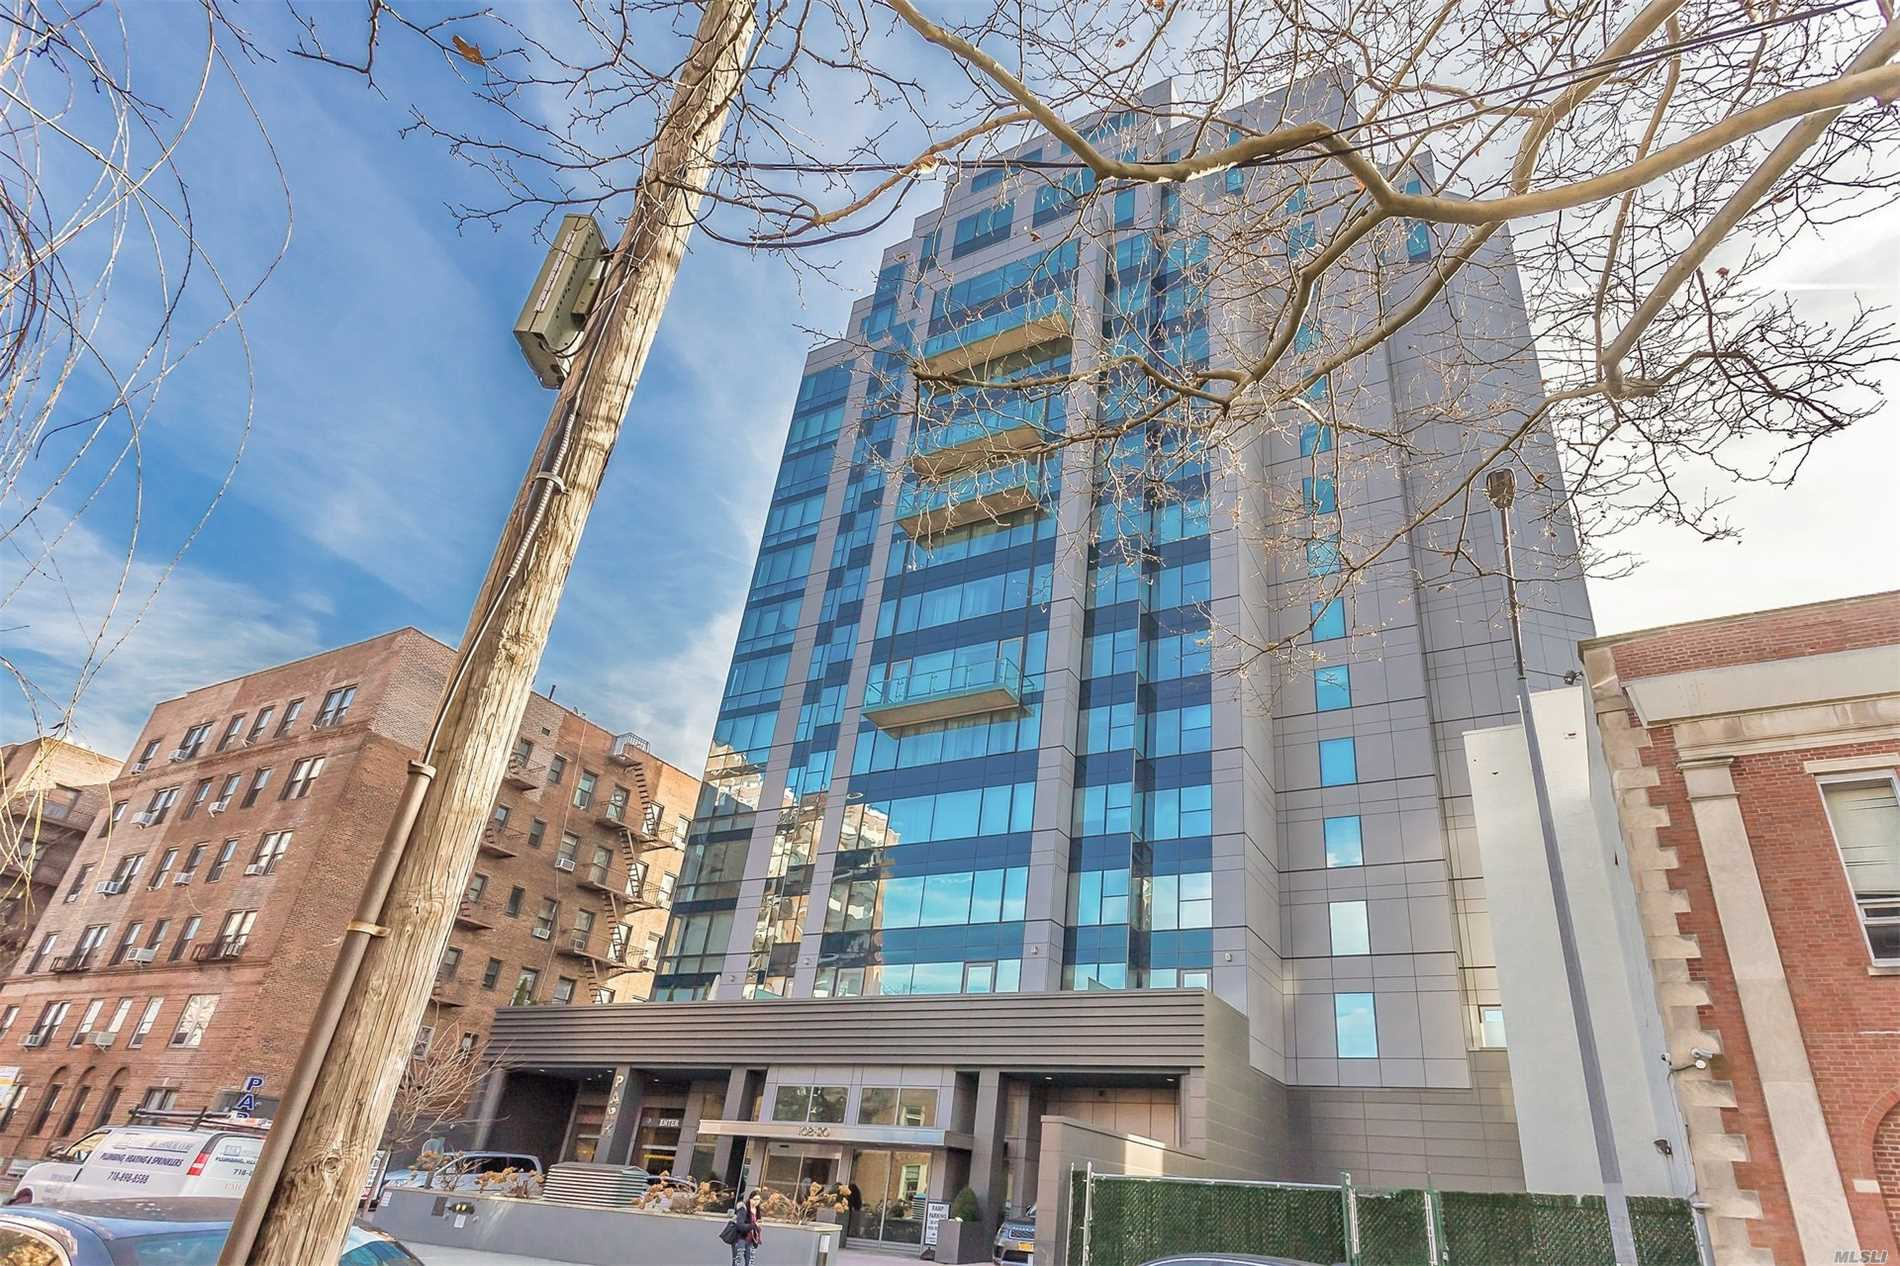 108-20 71st Ave, 9D - Forest Hills, New York